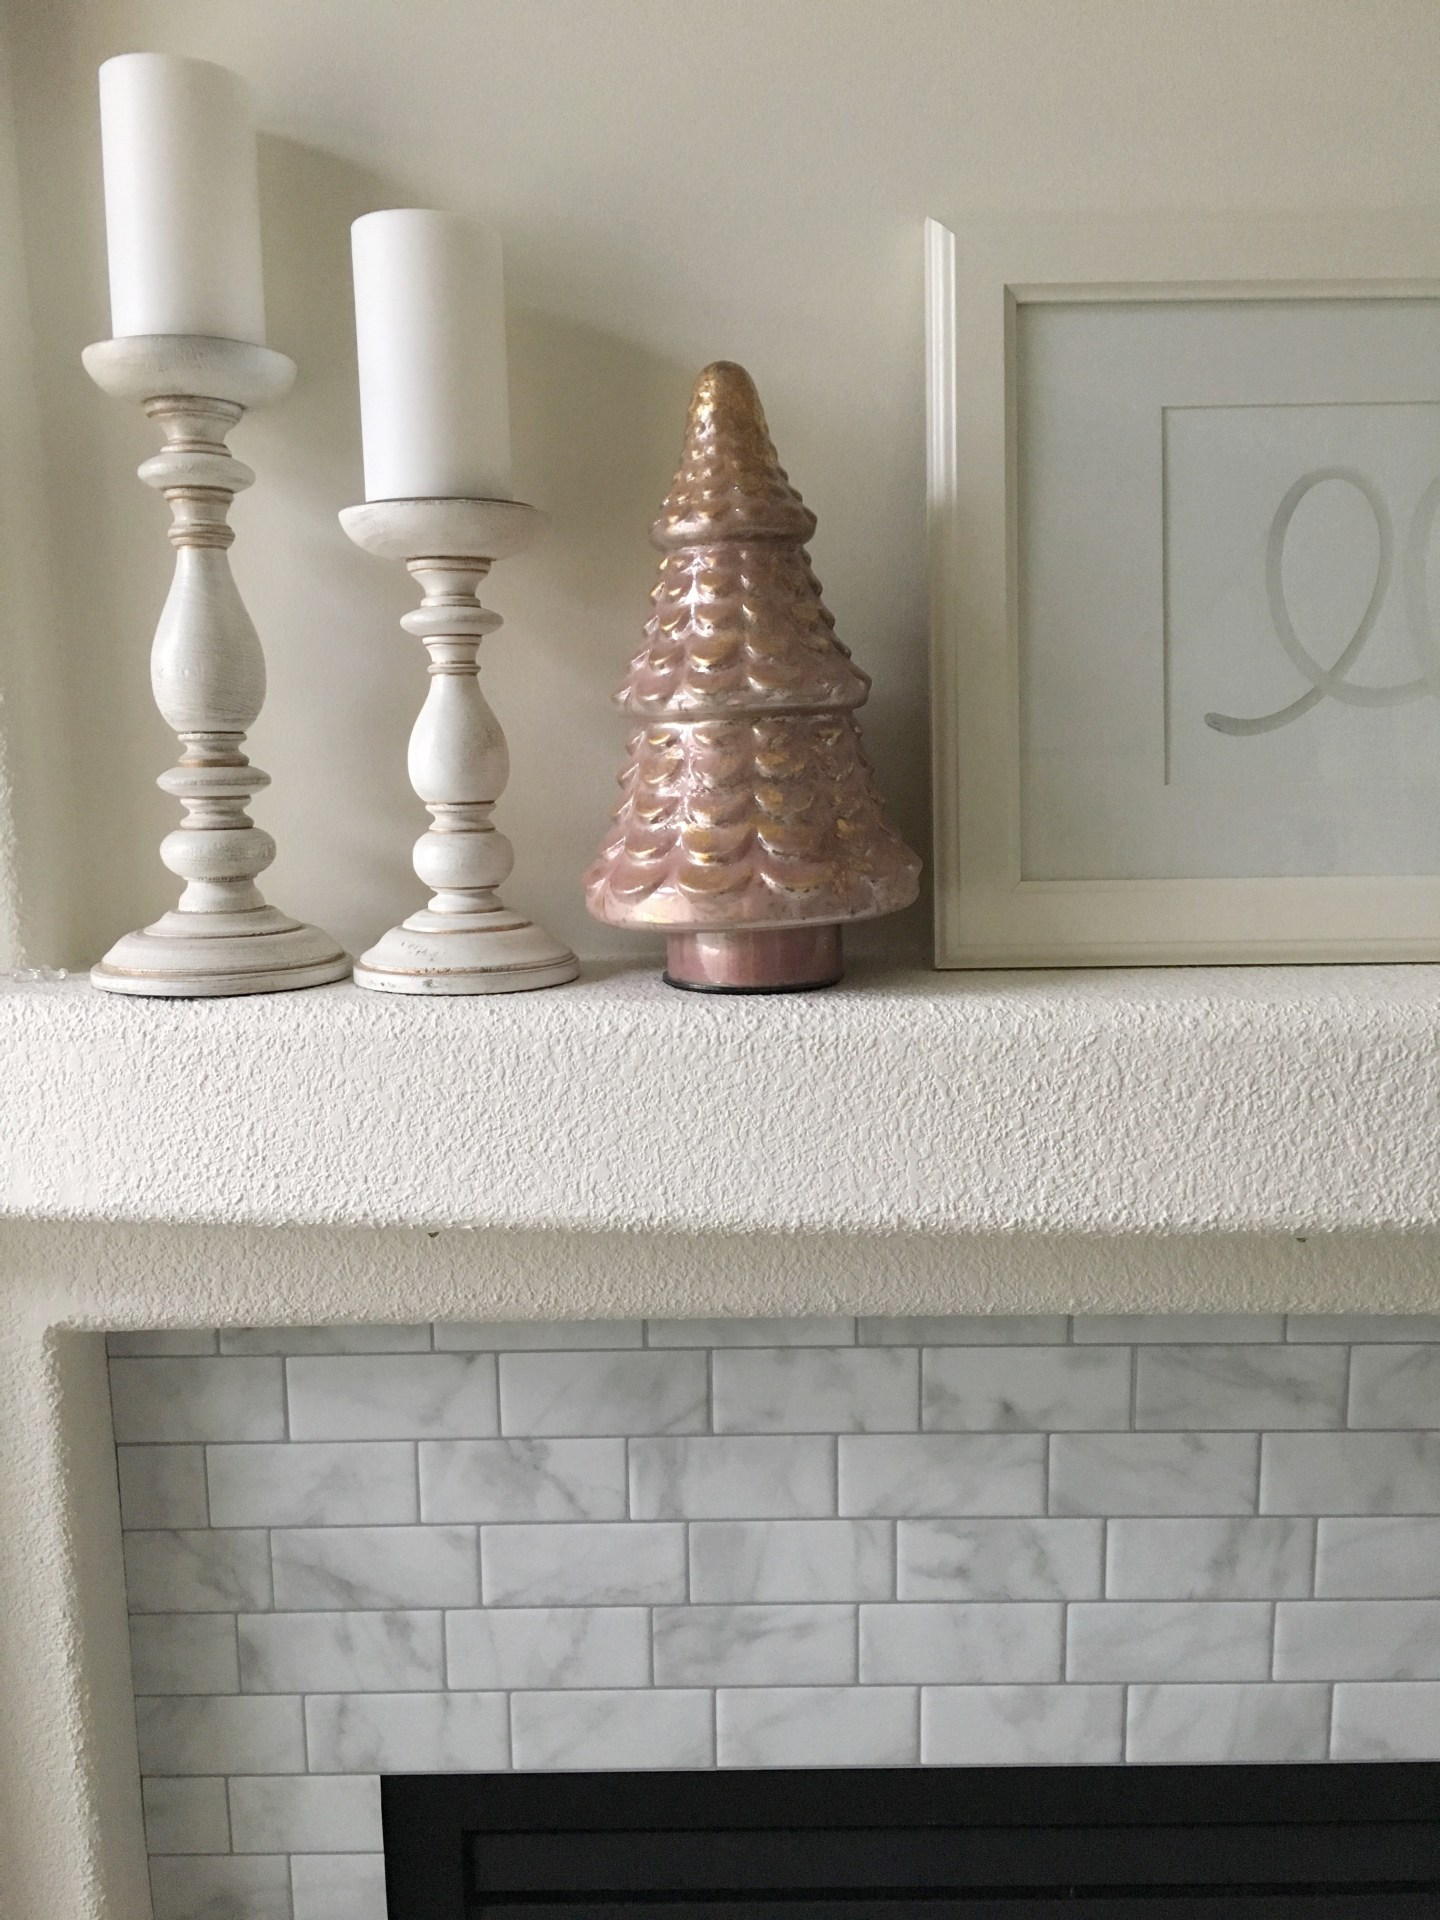 Smart Tiles DIY Fireplace Makeover - Life Is Better At Home